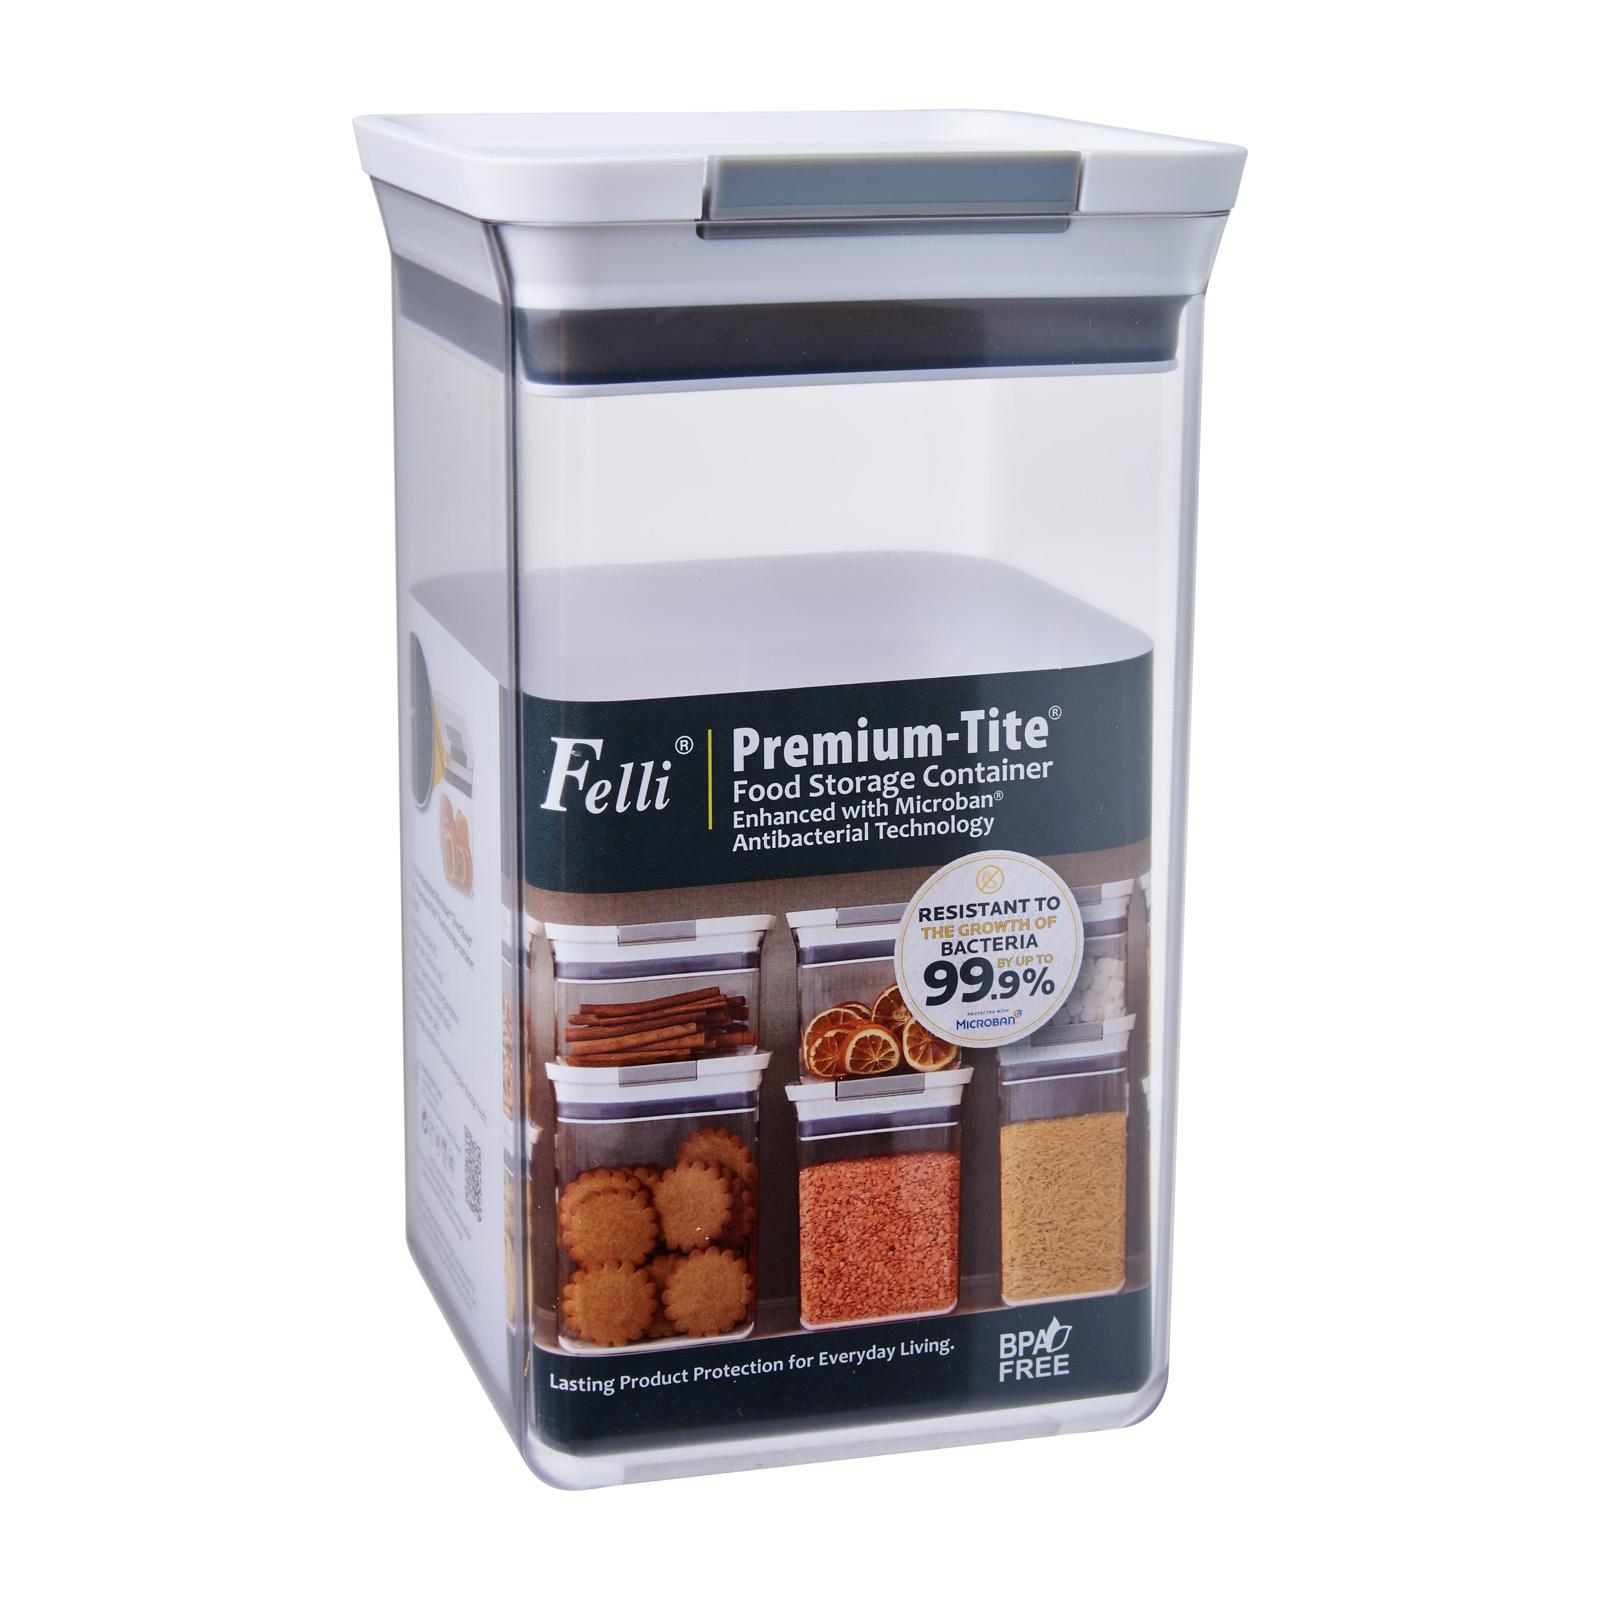 Felli Premium Tite Food Storage Container Enhanced with Microban Antibacterial Technology 2.4L